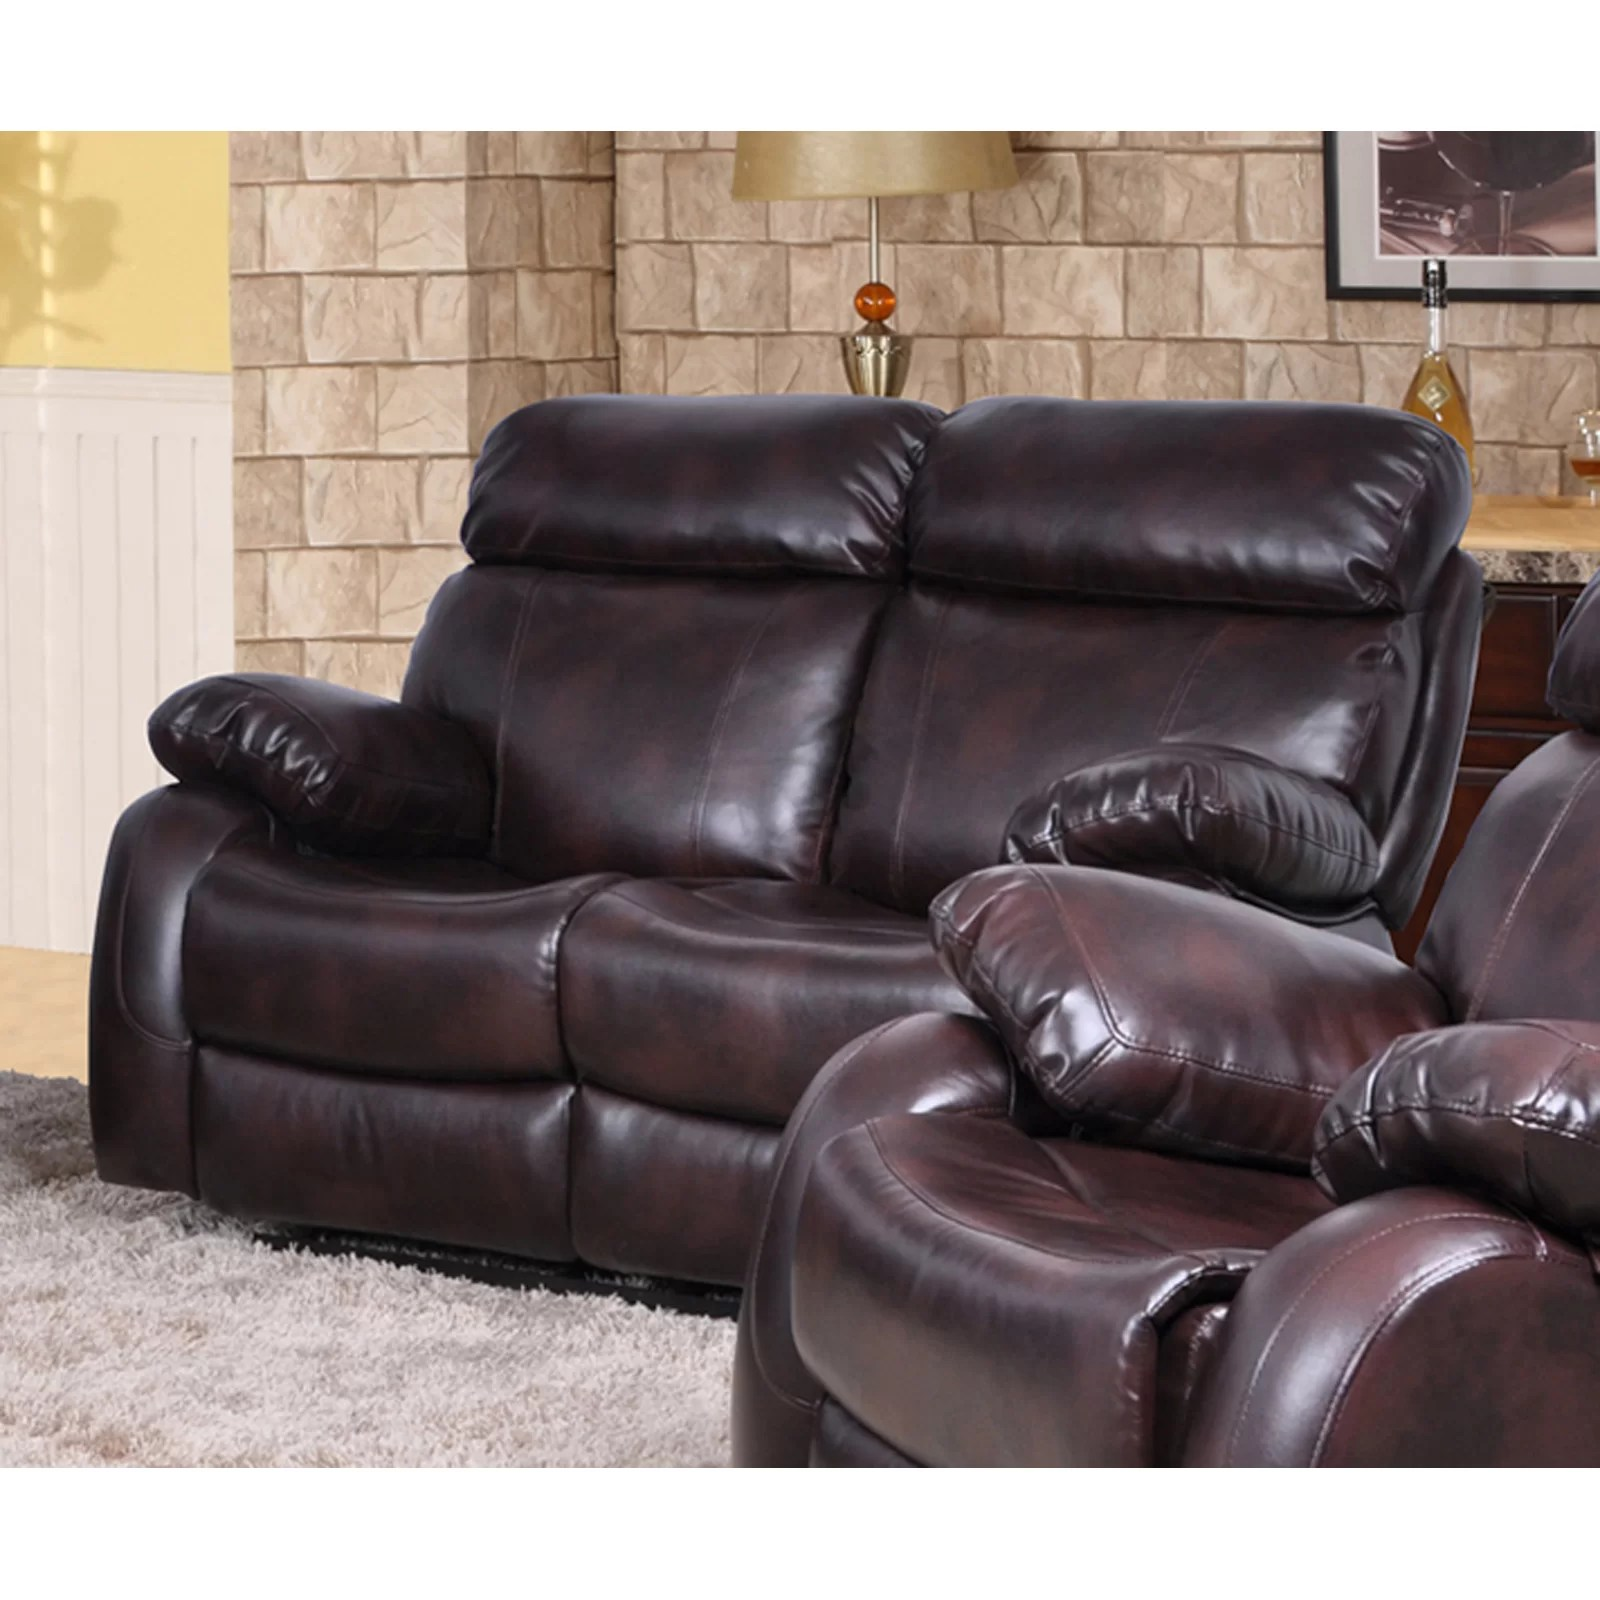 omaha sofa for sale by owner simmons upholstery soho reclining loveseat wayfair